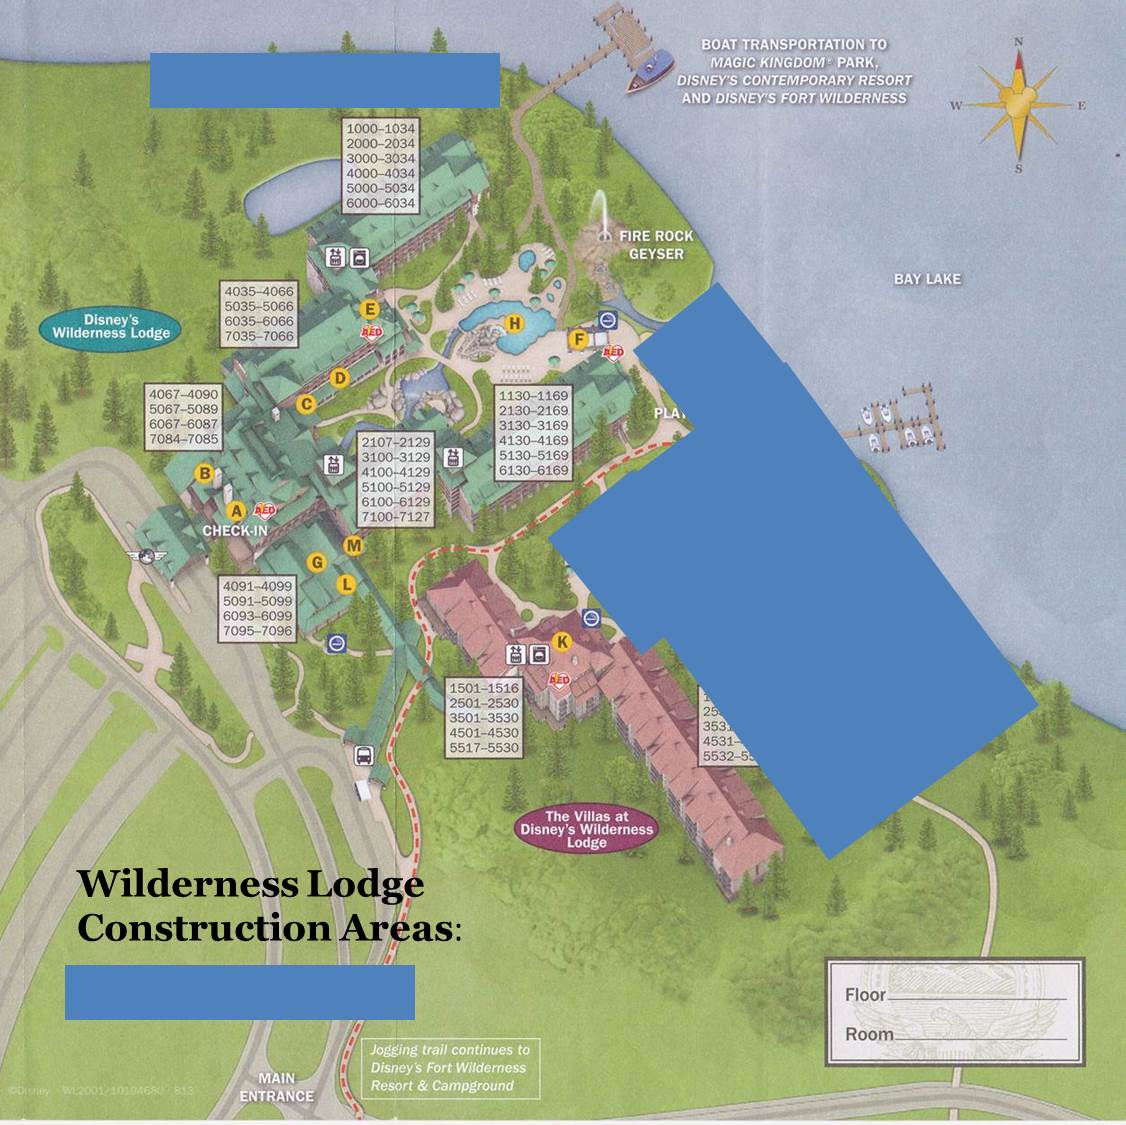 Wilderness Lodge Construction Areas Late 2015 through 2016 from yourfirstvisit.net